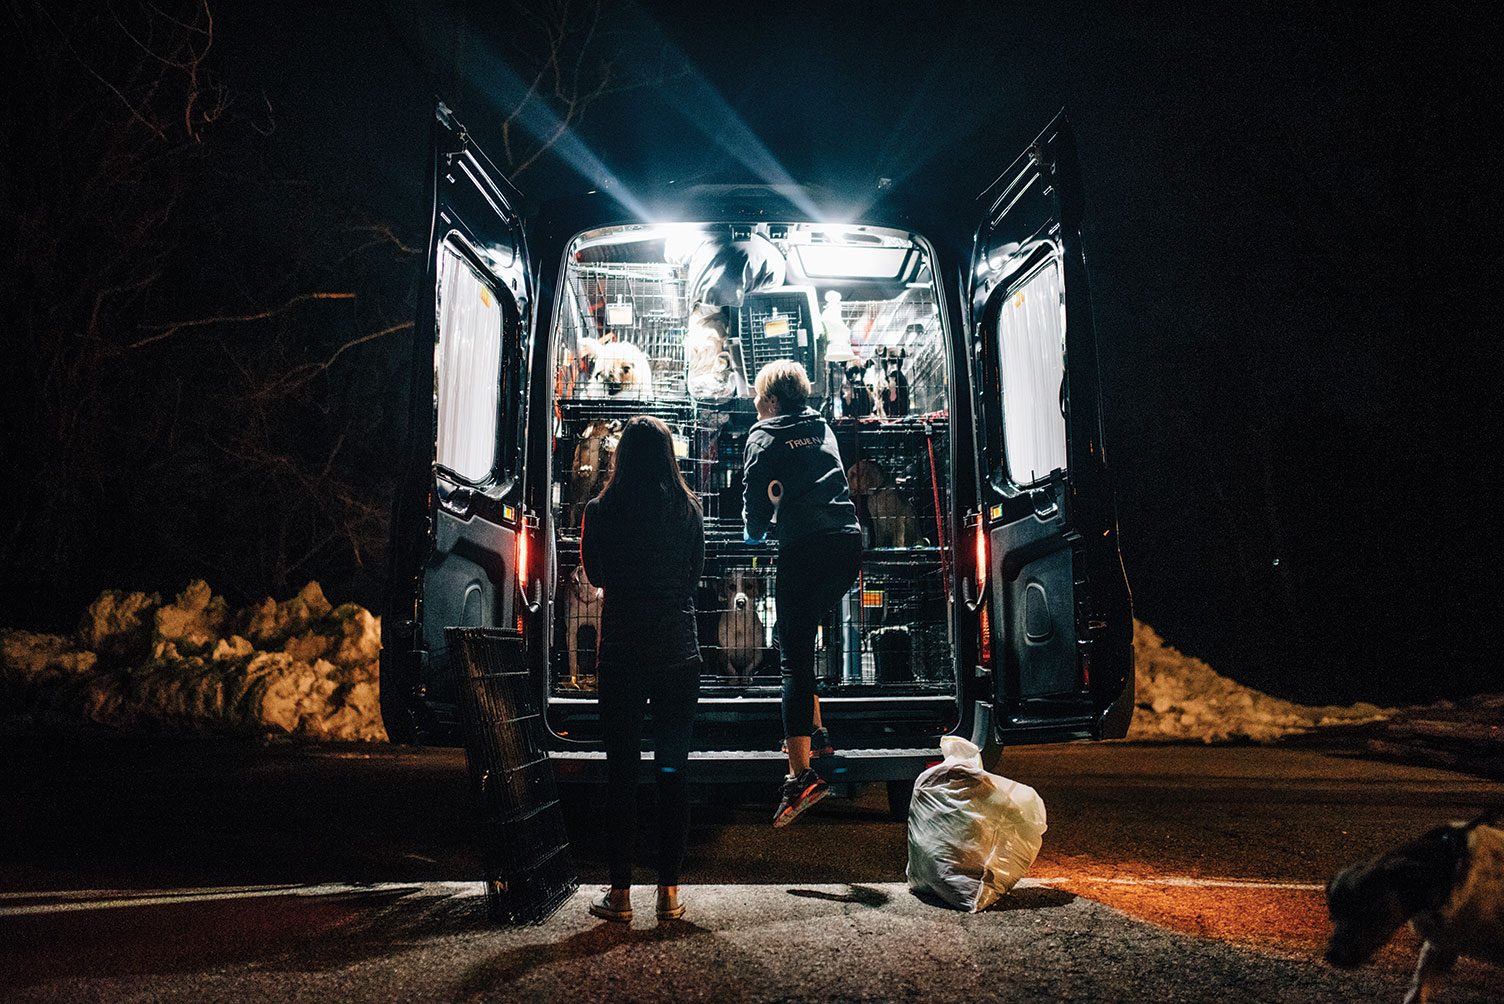 Animal transporter Heather Hobby, right, together with the author, preparing to unload dogs during a nighttime stop on their more than 1,600-mile journey from Mississippi to Maine.